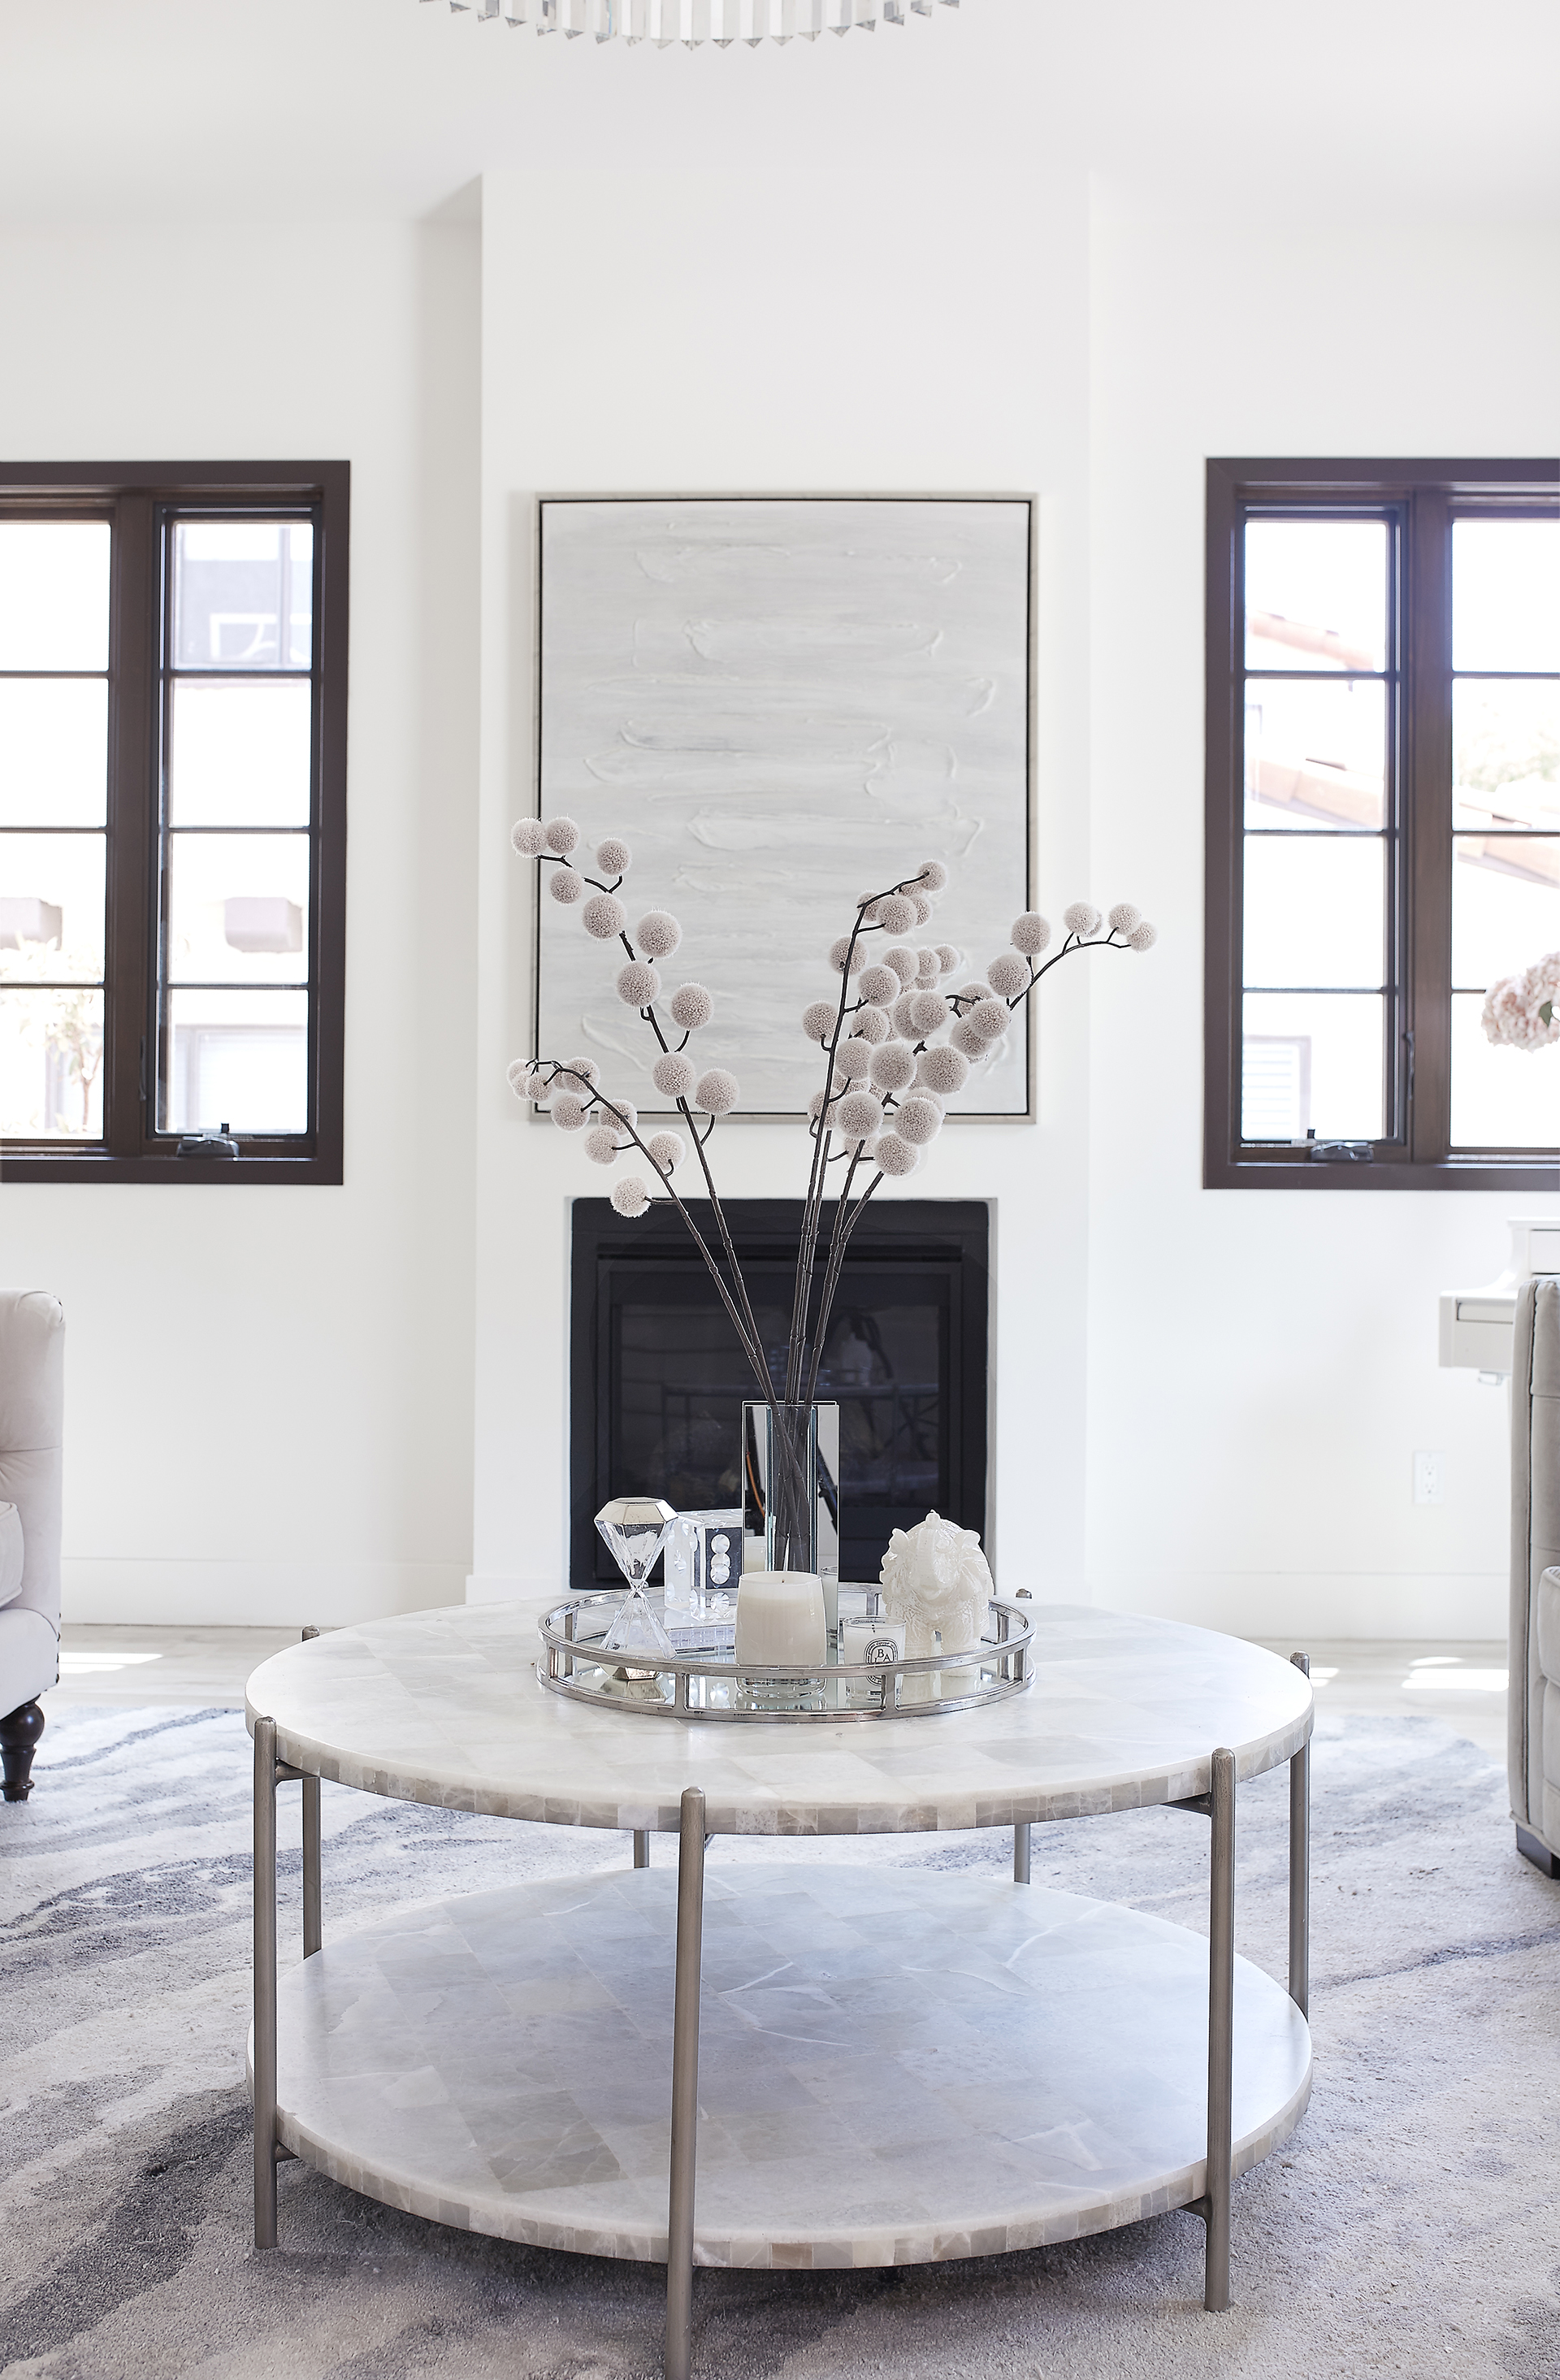 ZGallerie painting art over fireplace